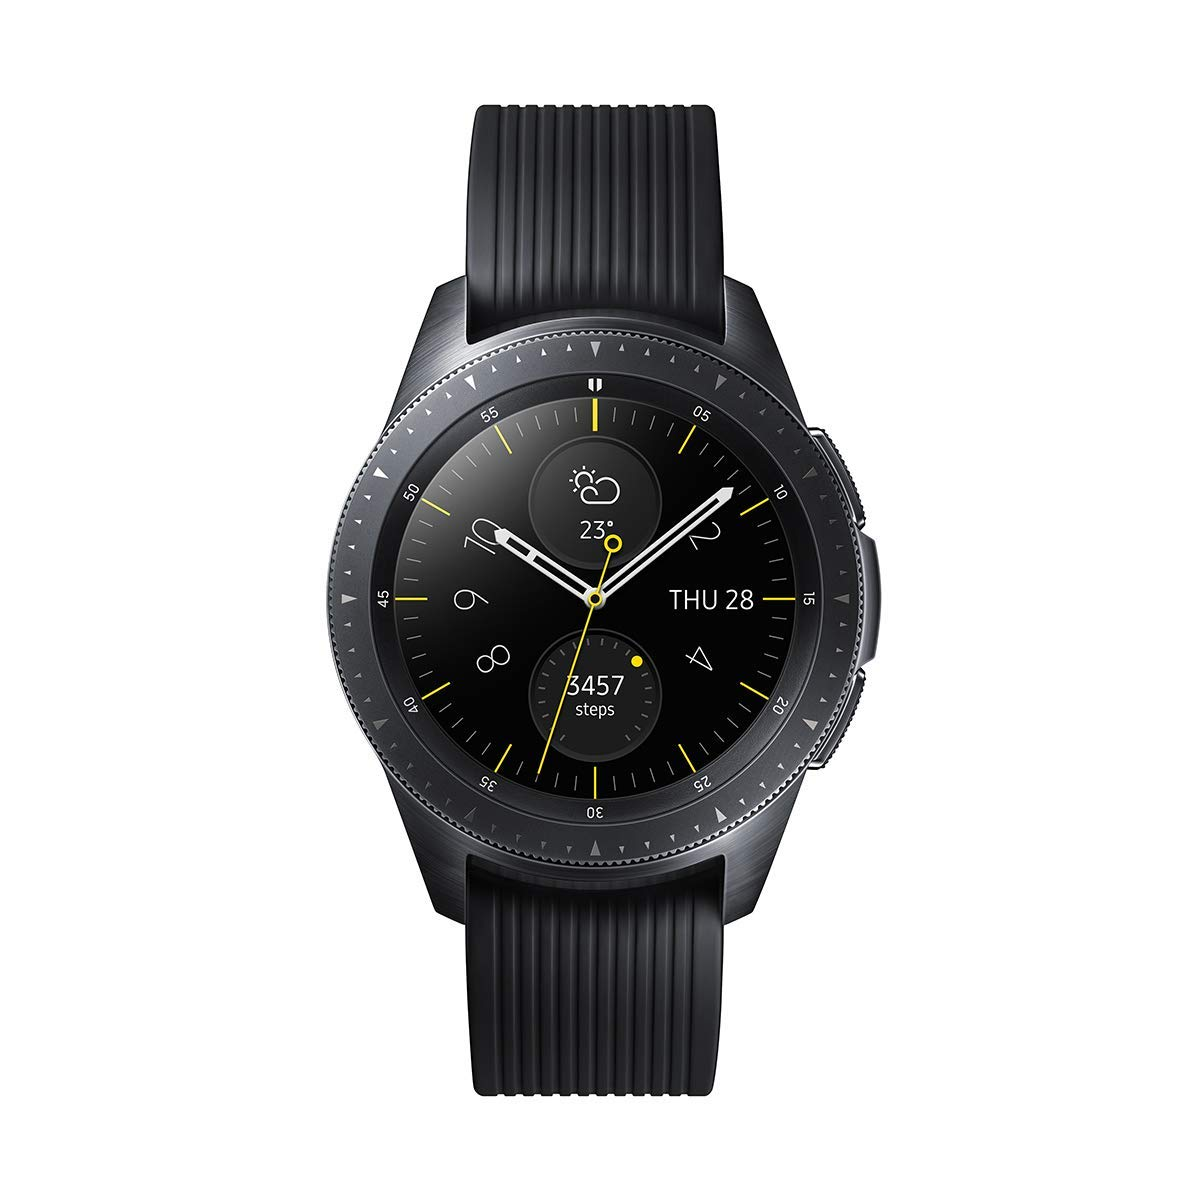 Reloj inteligente Samsung Galaxy Watch